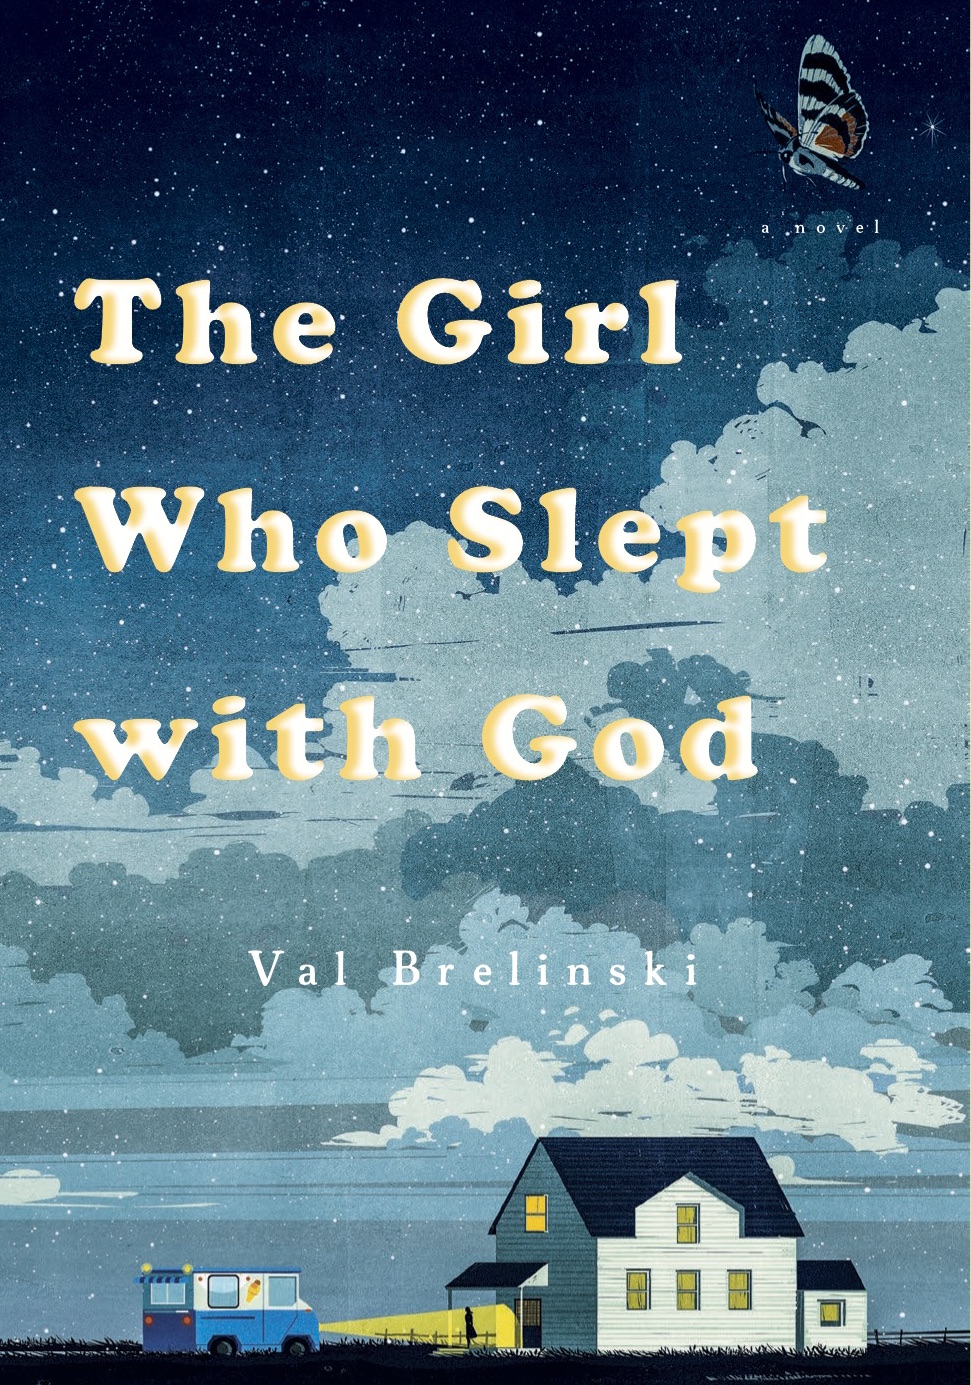 The-Girl-Who-Slept-with-God-Cover.jpg